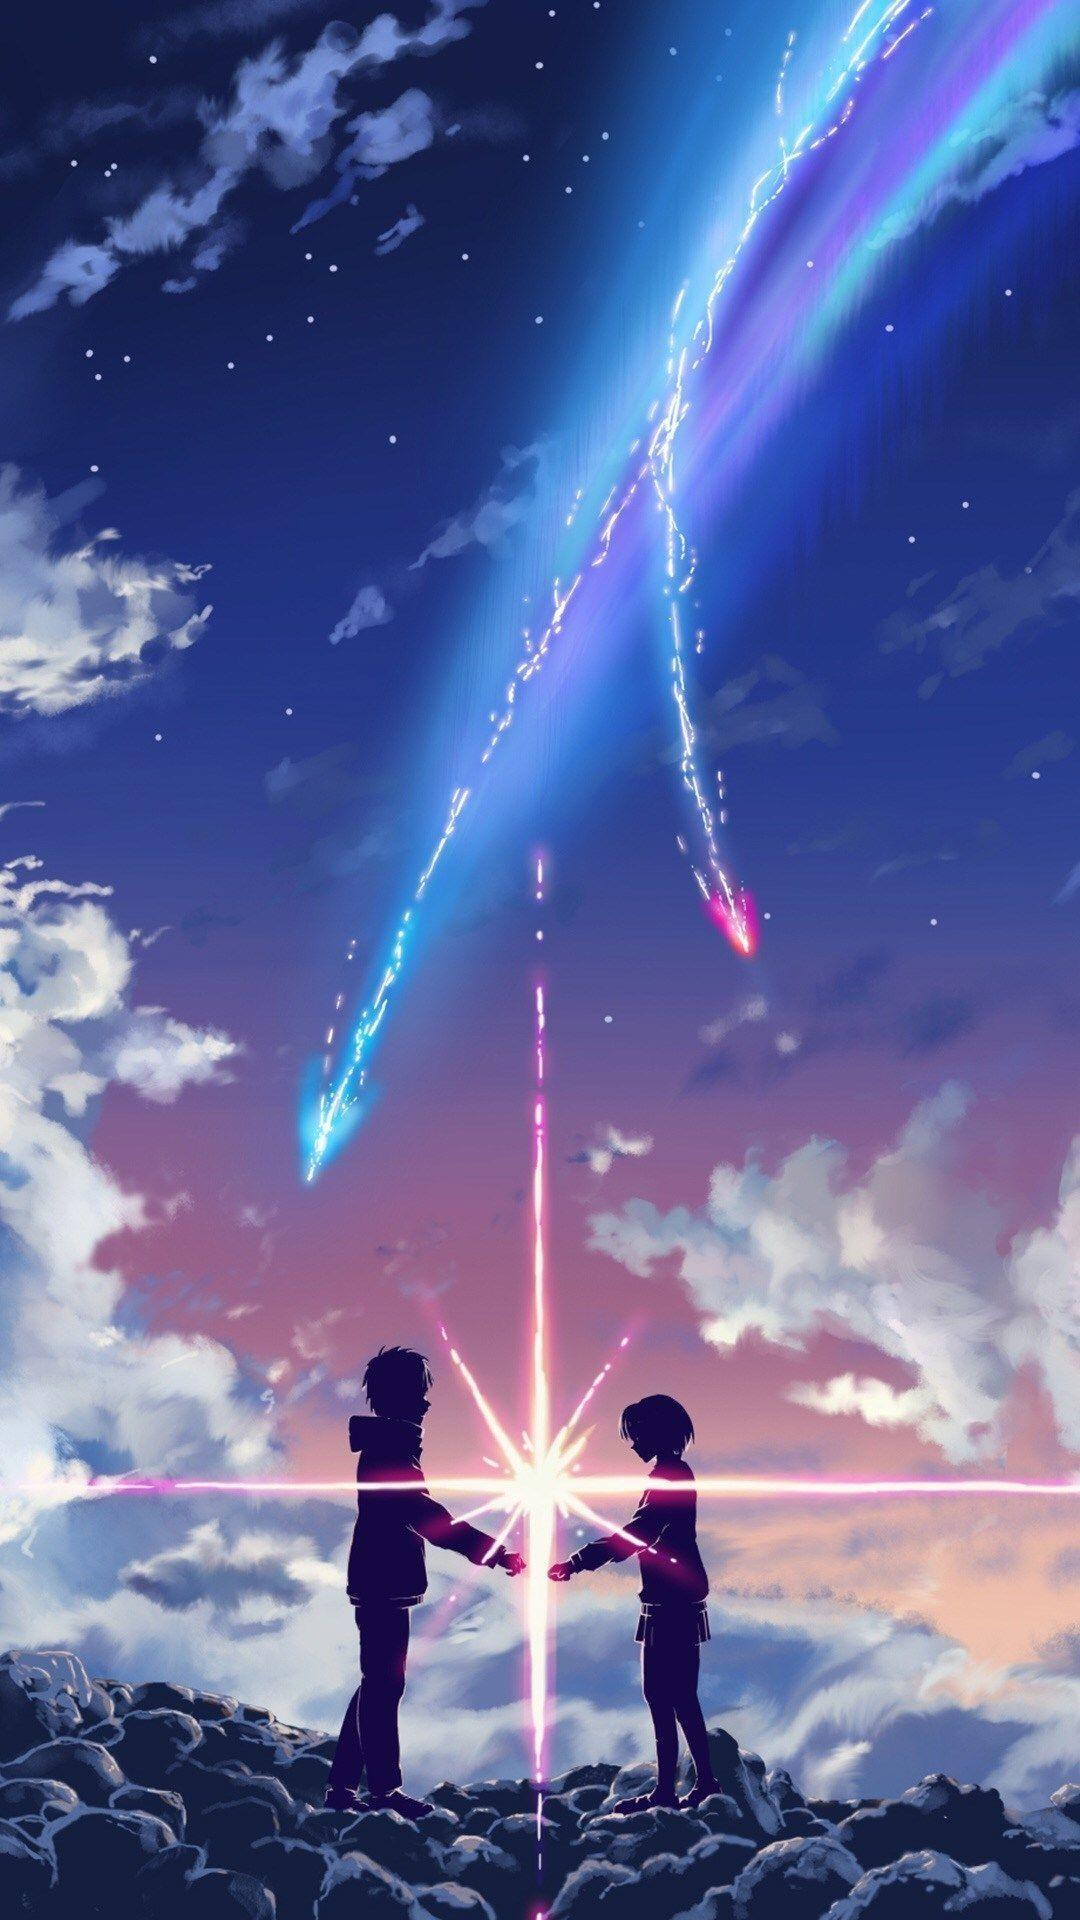 anime aesthetic iphone wallpapers Fresh Your Name Movie Touching